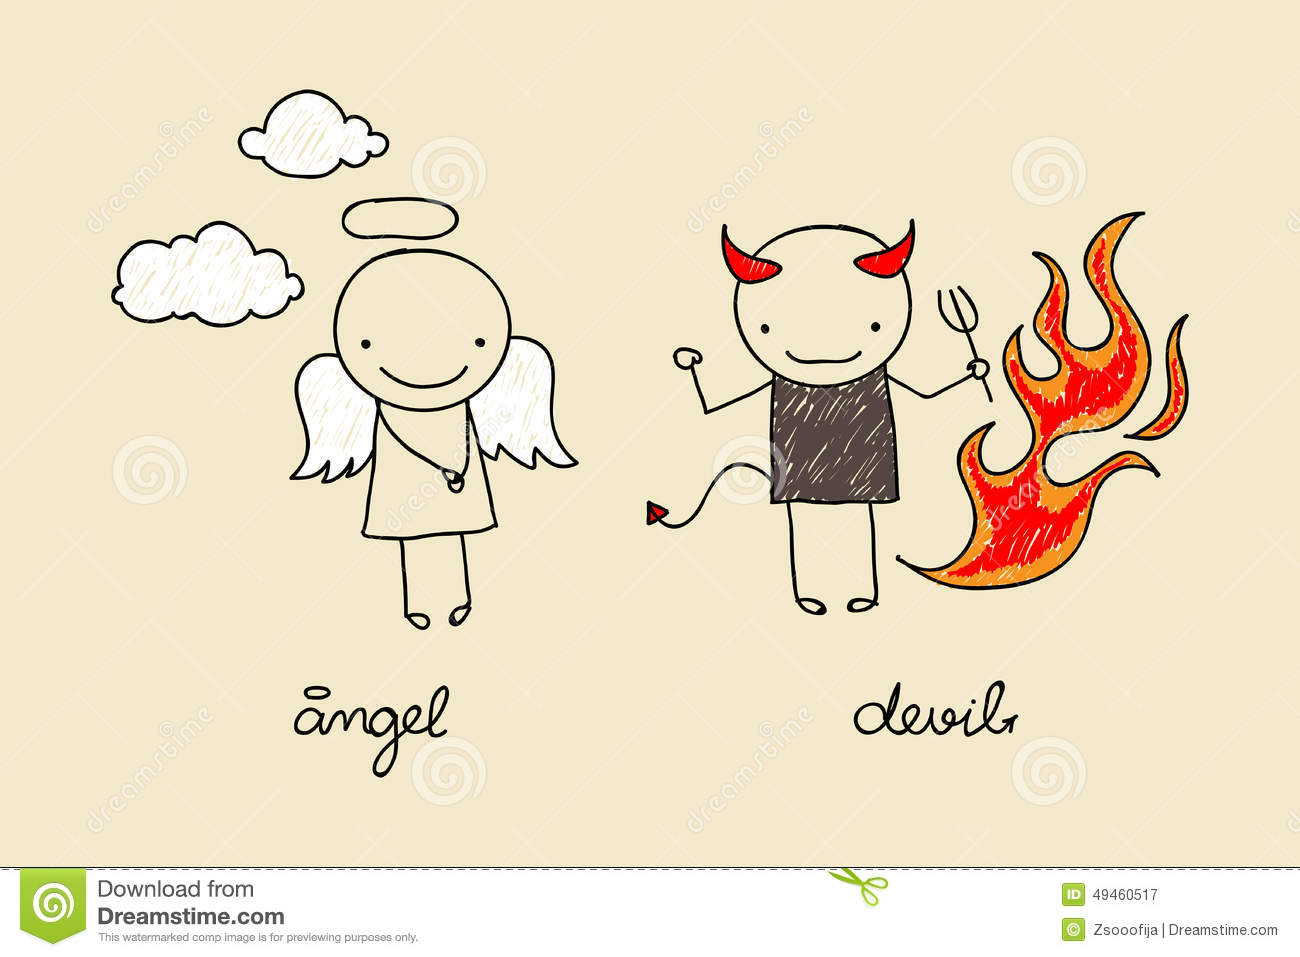 cute picture ideas for christmas cards - Cute Angel And Devil Doodle Stock Vector Image